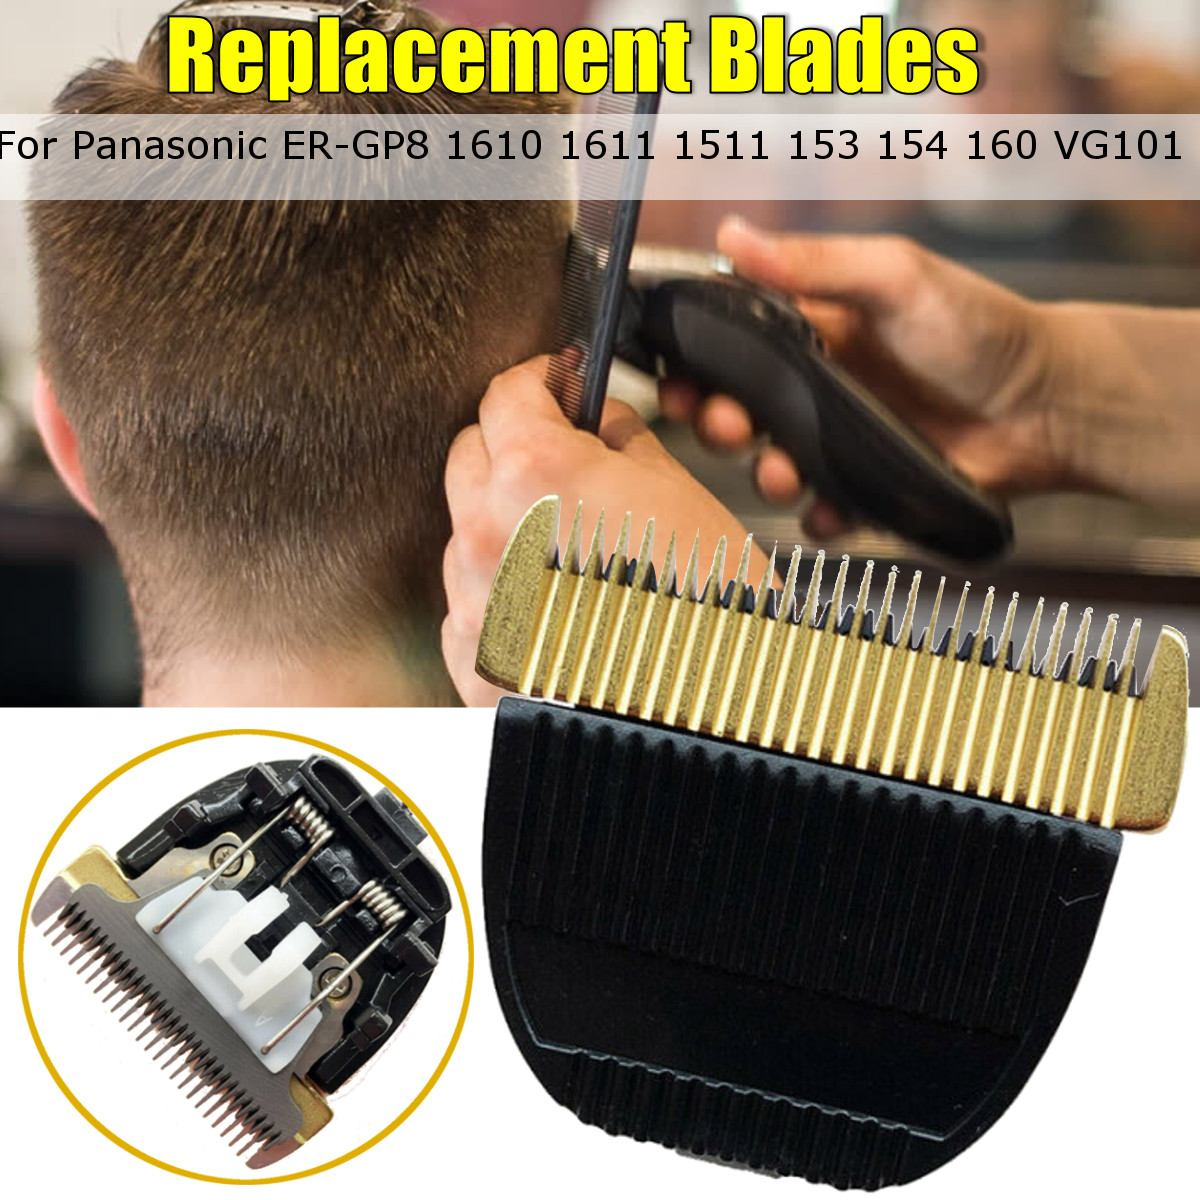 Ceramic Titanium  Replacement Clipper Blades For Panasonic ER-GP8 1610 1611 1511 153 154 160 VG101 Cutter Hair Grooming Trimmer